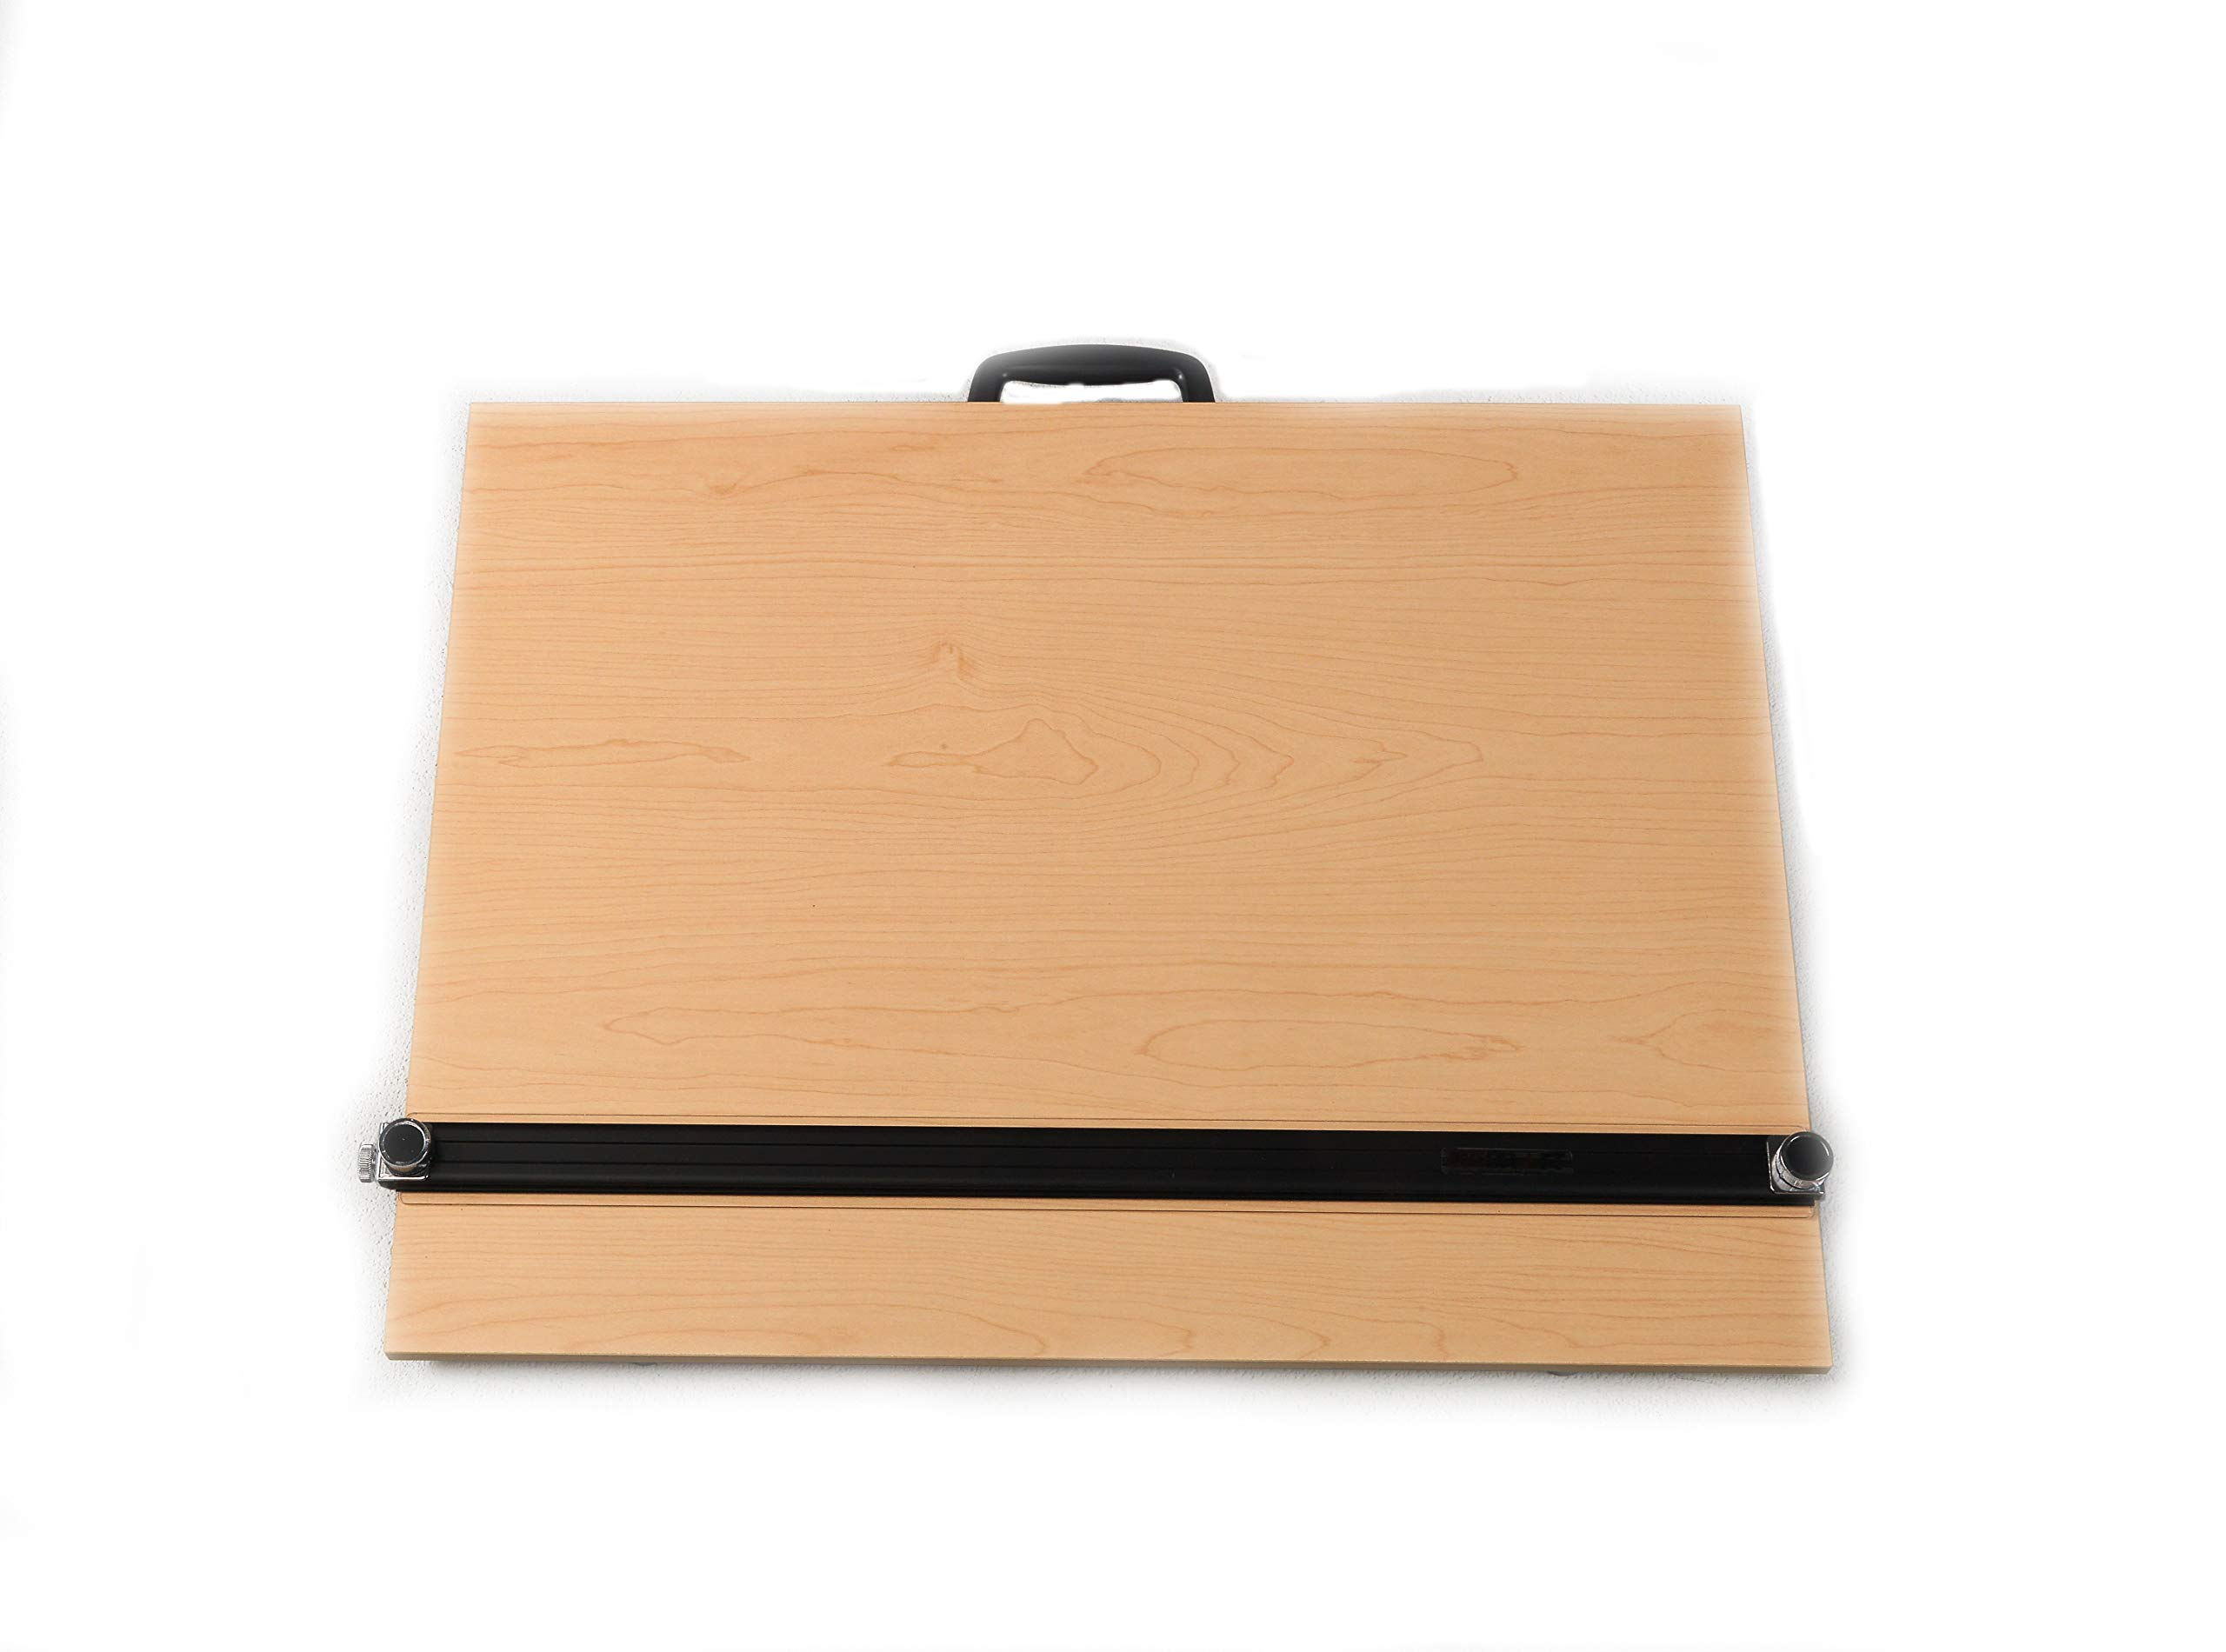 Martin Universal Design Universal Design Pro-Draft Parallel Edge Board with Straightedge and Feet, Woodgrain, 24 x 36 Inches, 1 Each